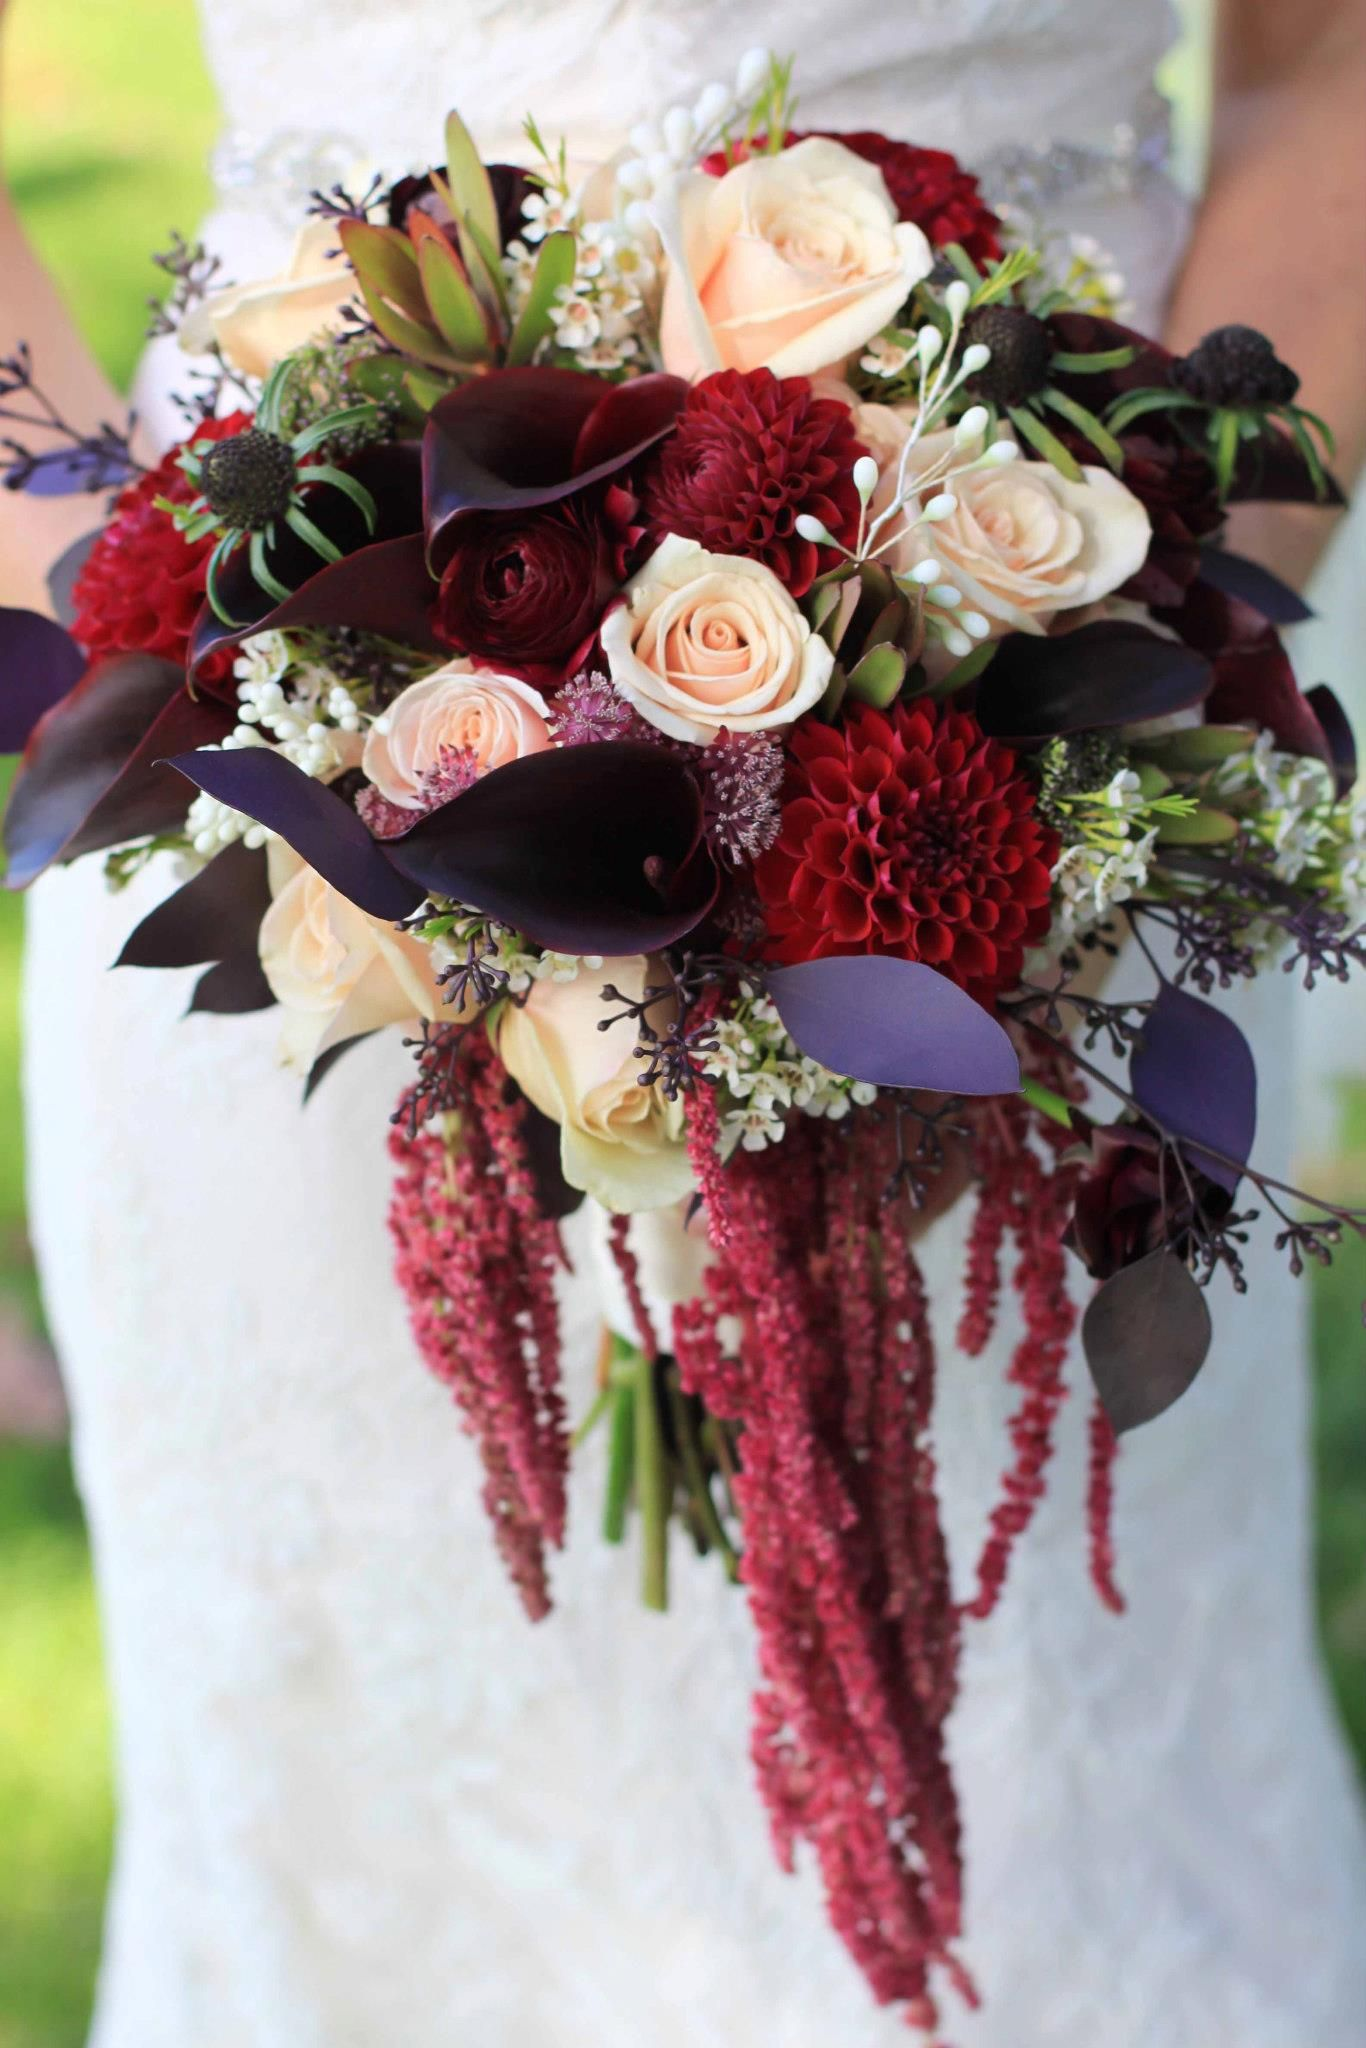 Black Calla Lilies, black Dahlias and draping amaranthus